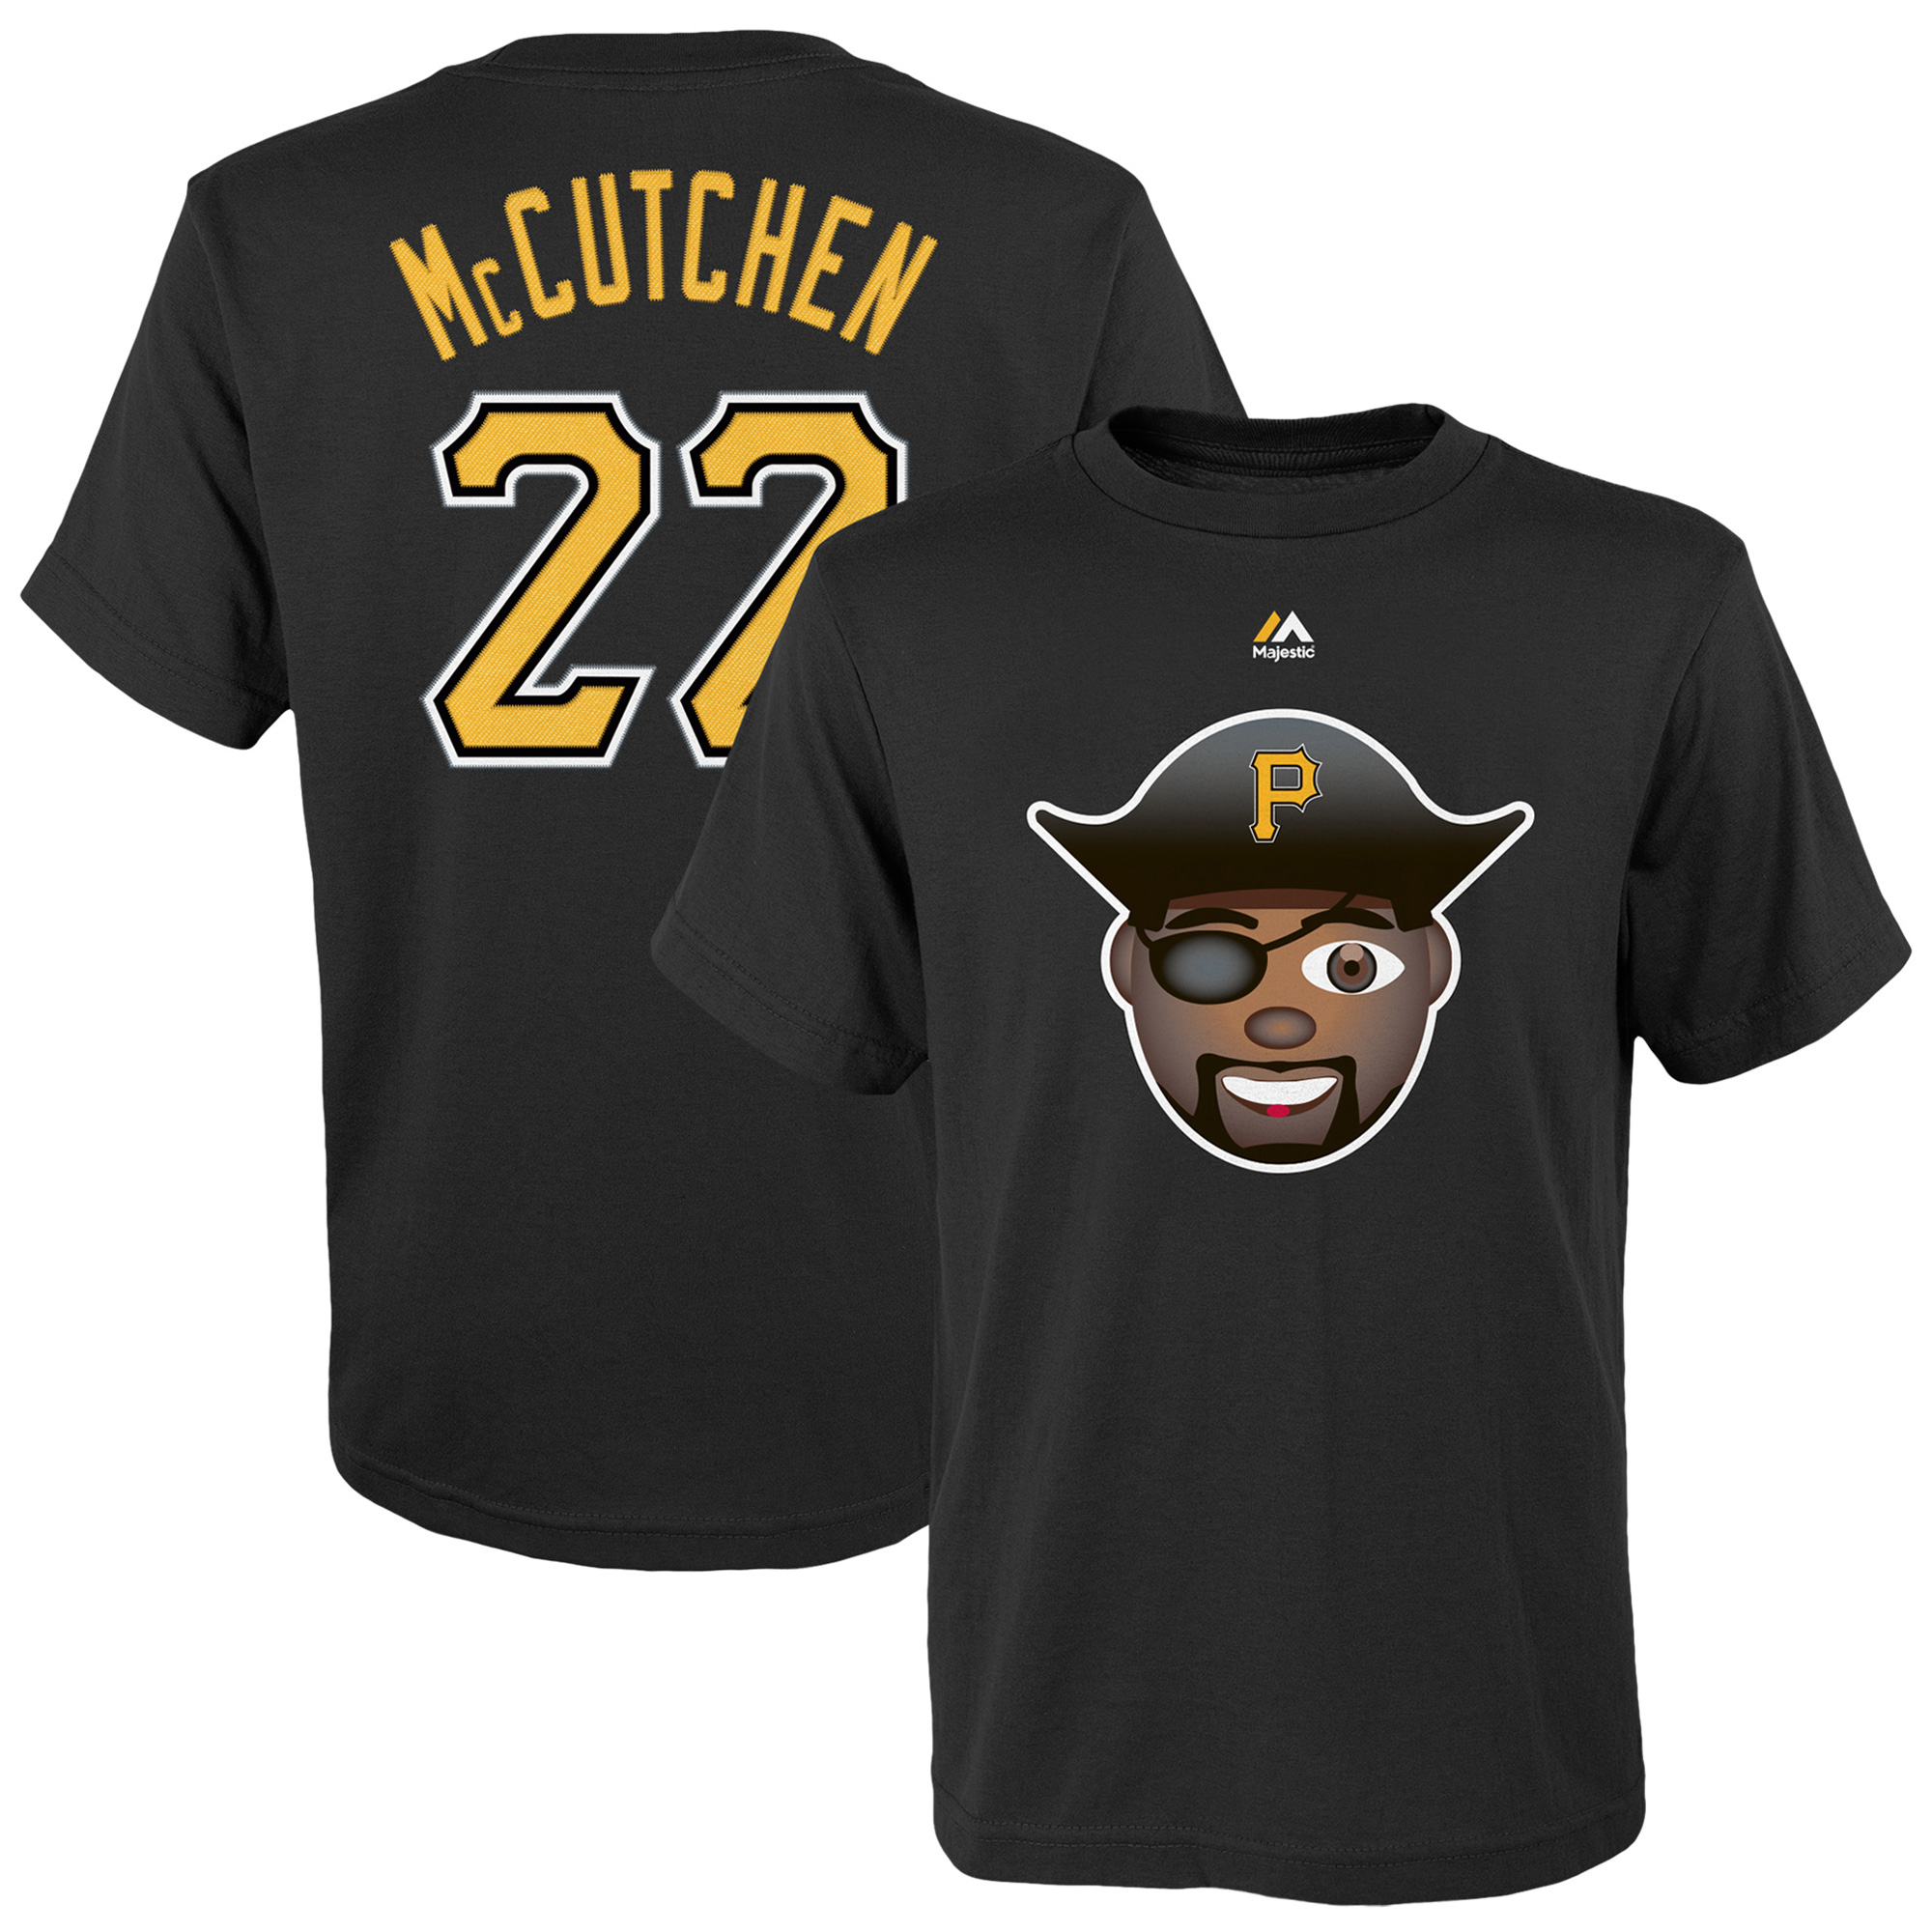 Andrew McCutchen Pittsburgh Pirates Majestic Name & Number Emoji T-Shirt - Black